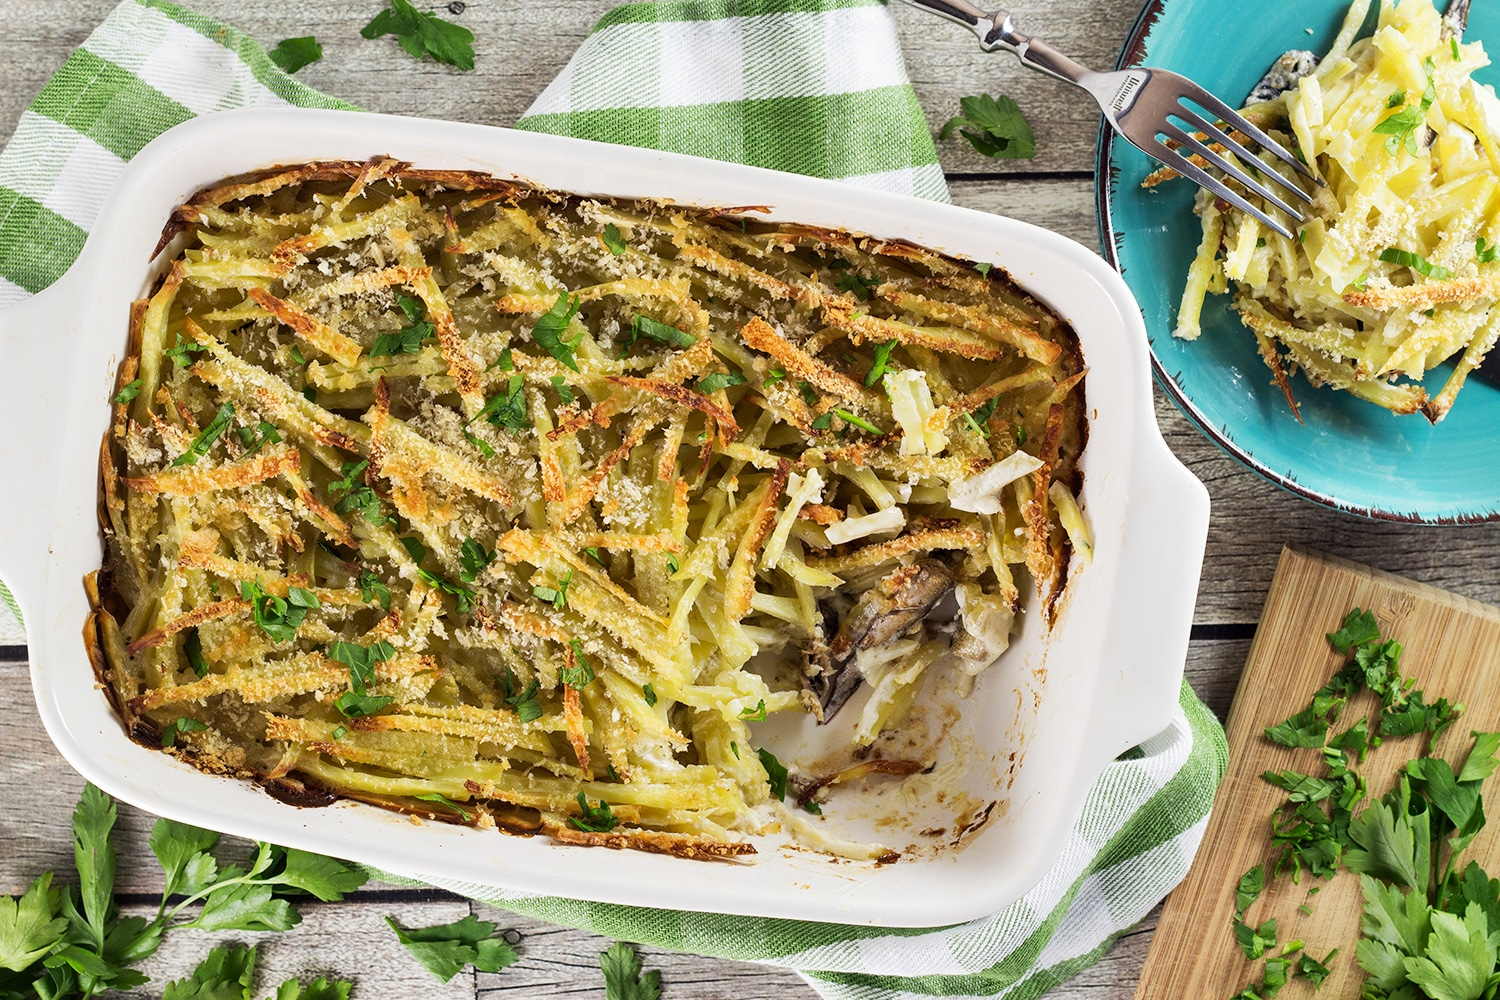 Janssons Frestelse or Jansson's Temptation is a classic Swedish potato and sprat casserole traditionally served on Christmas but great any time of the year. Creamy, hearty, filling! | cookingtheglobe.com